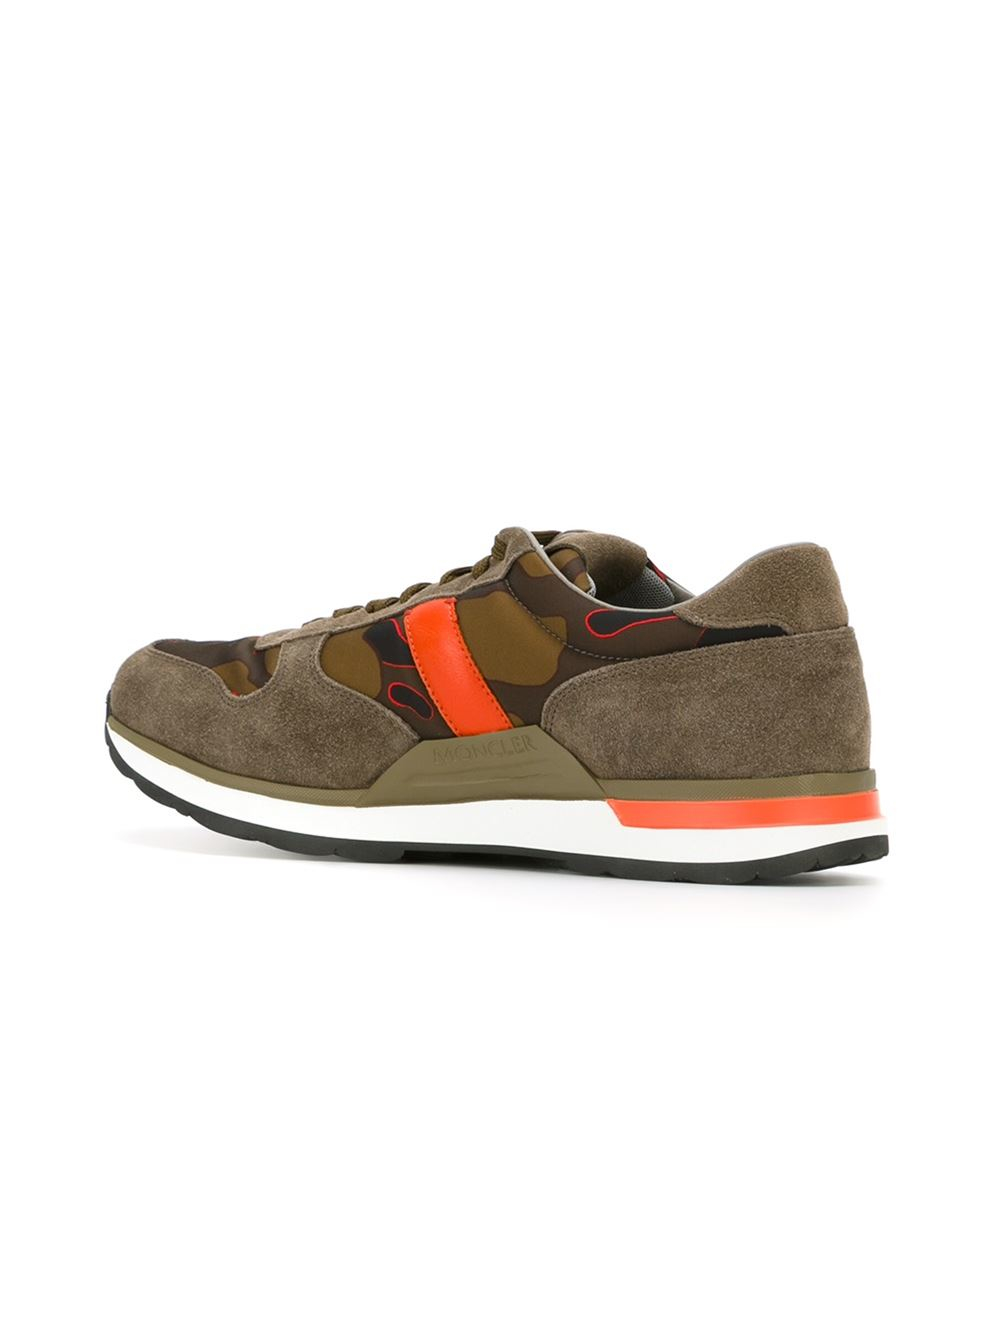 moncler new montego sneakers in brown for lyst